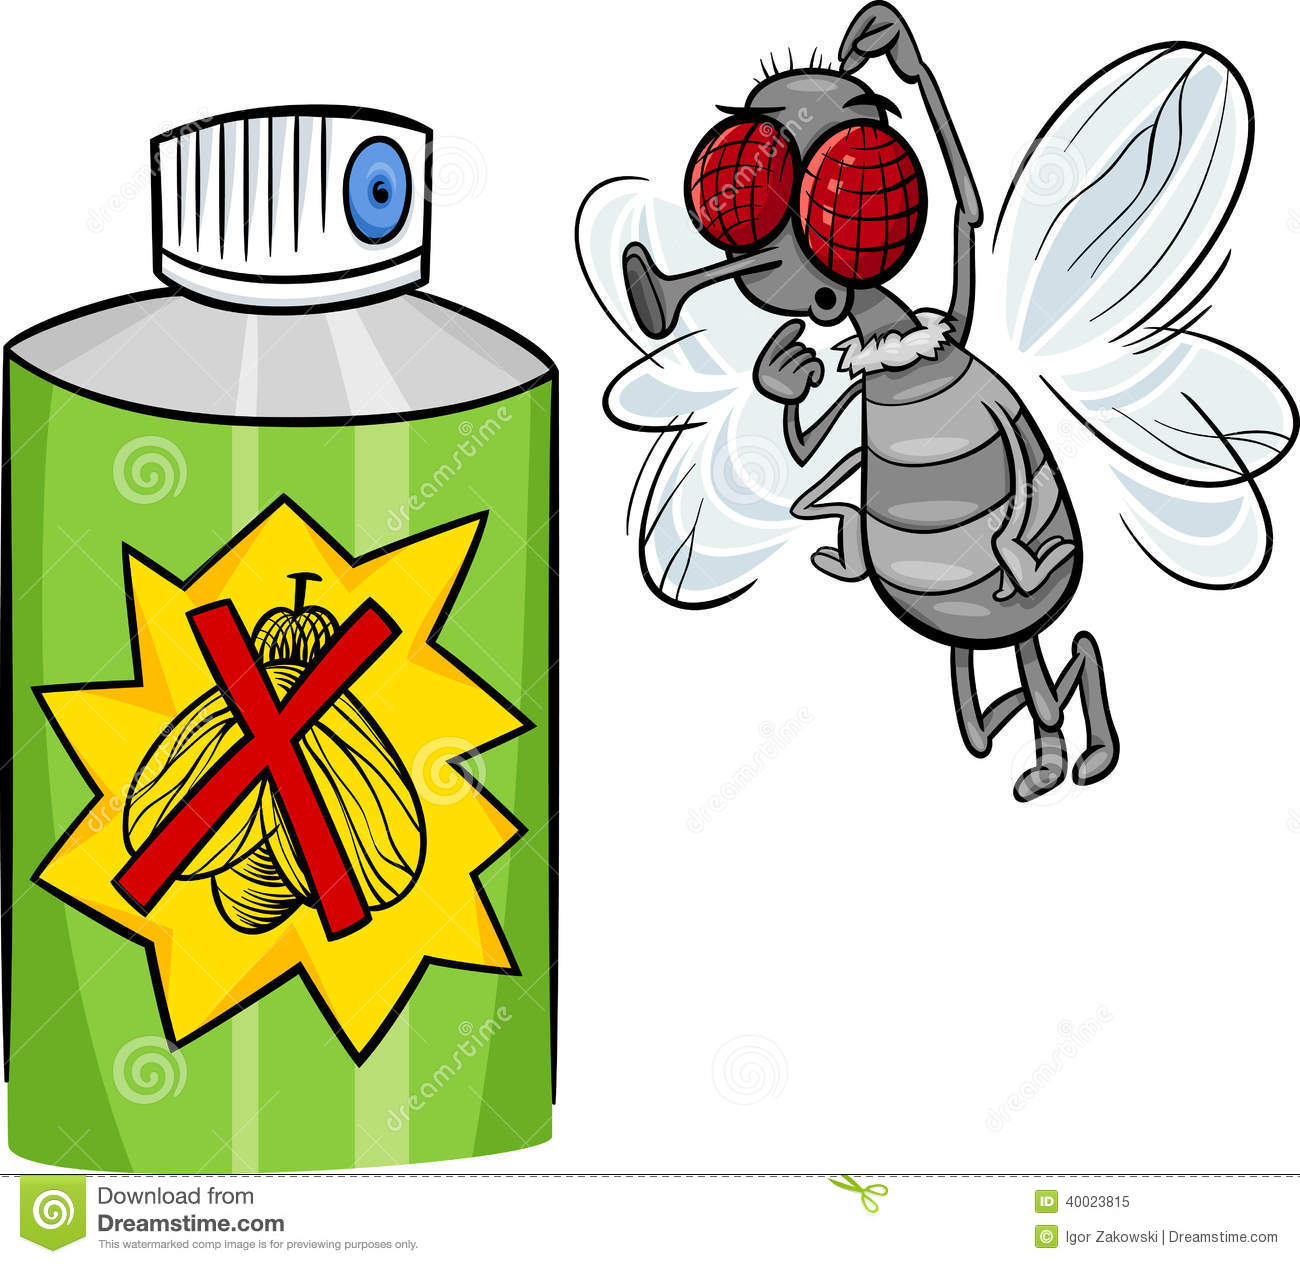 Bug spray cartoon - photo#1